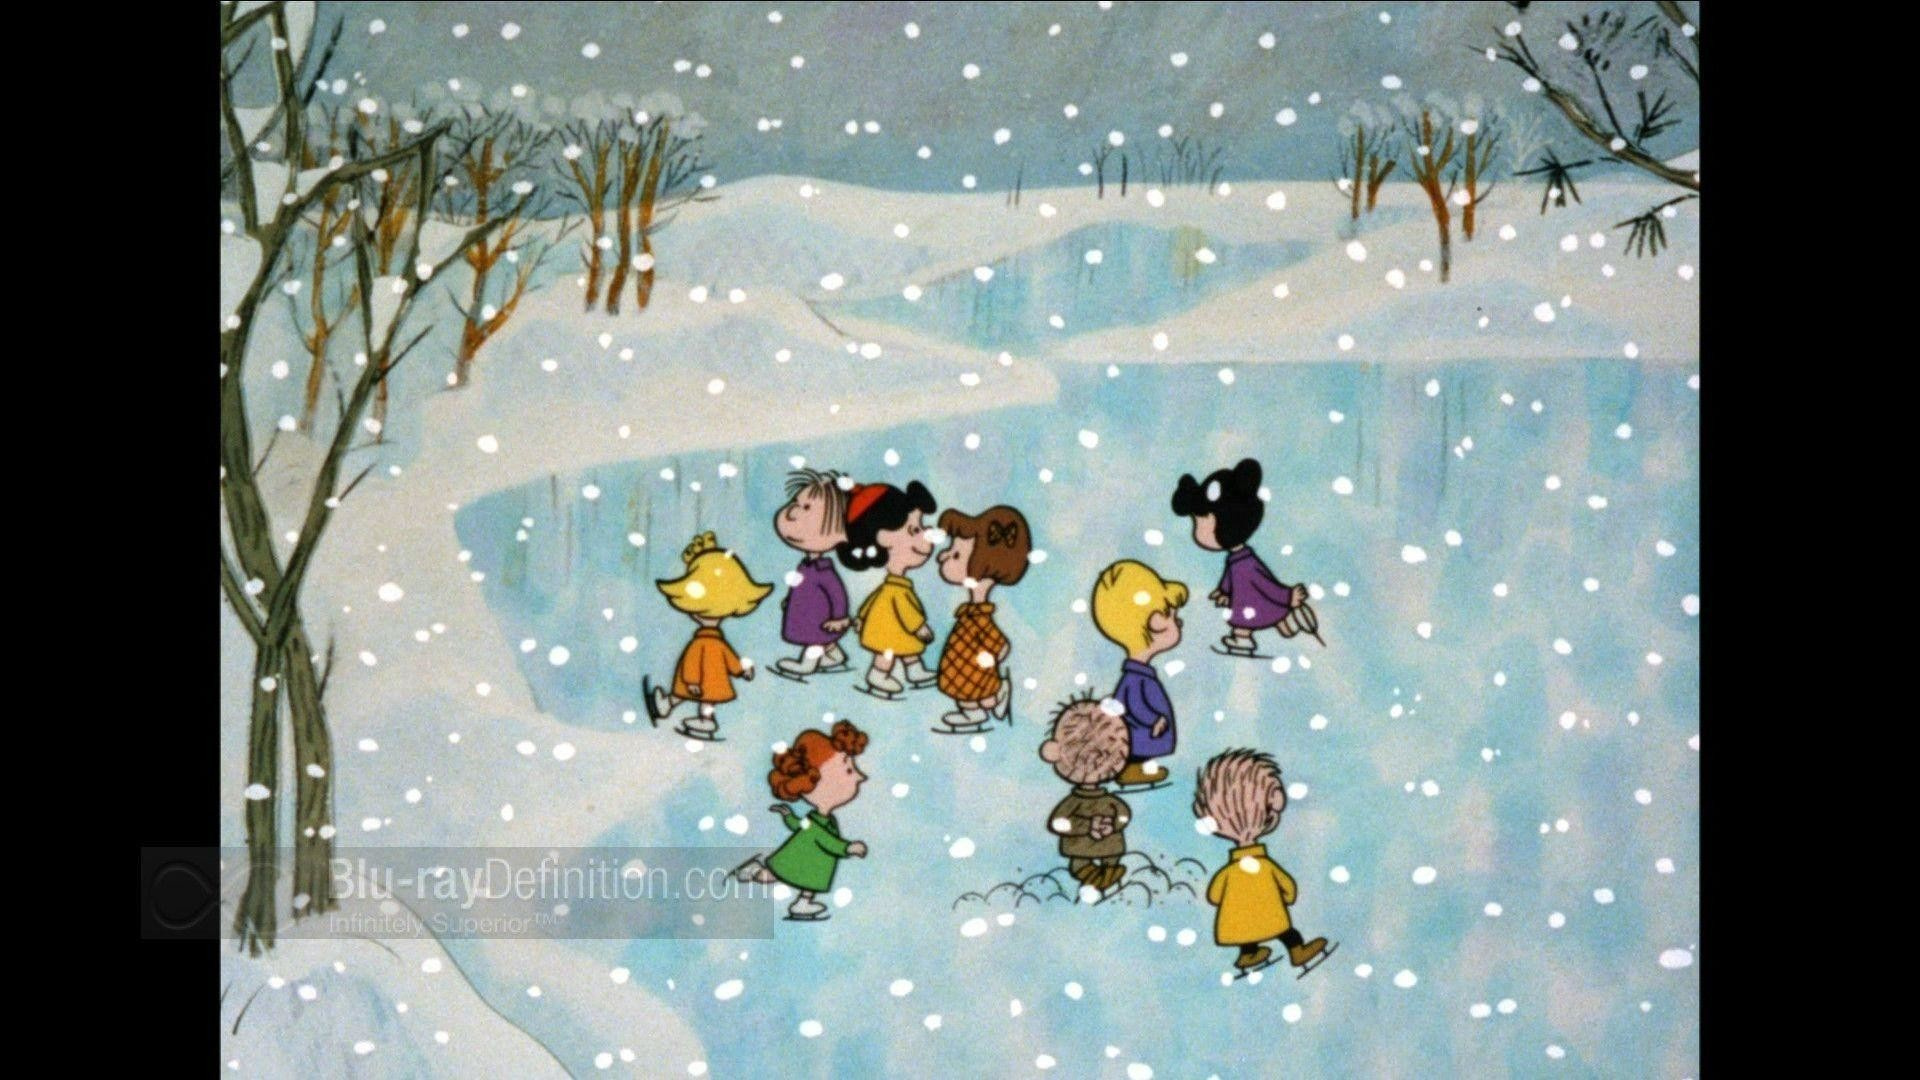 1920x1080 Charlie Brown Christmas Backgrounds - Wallpaper Cave